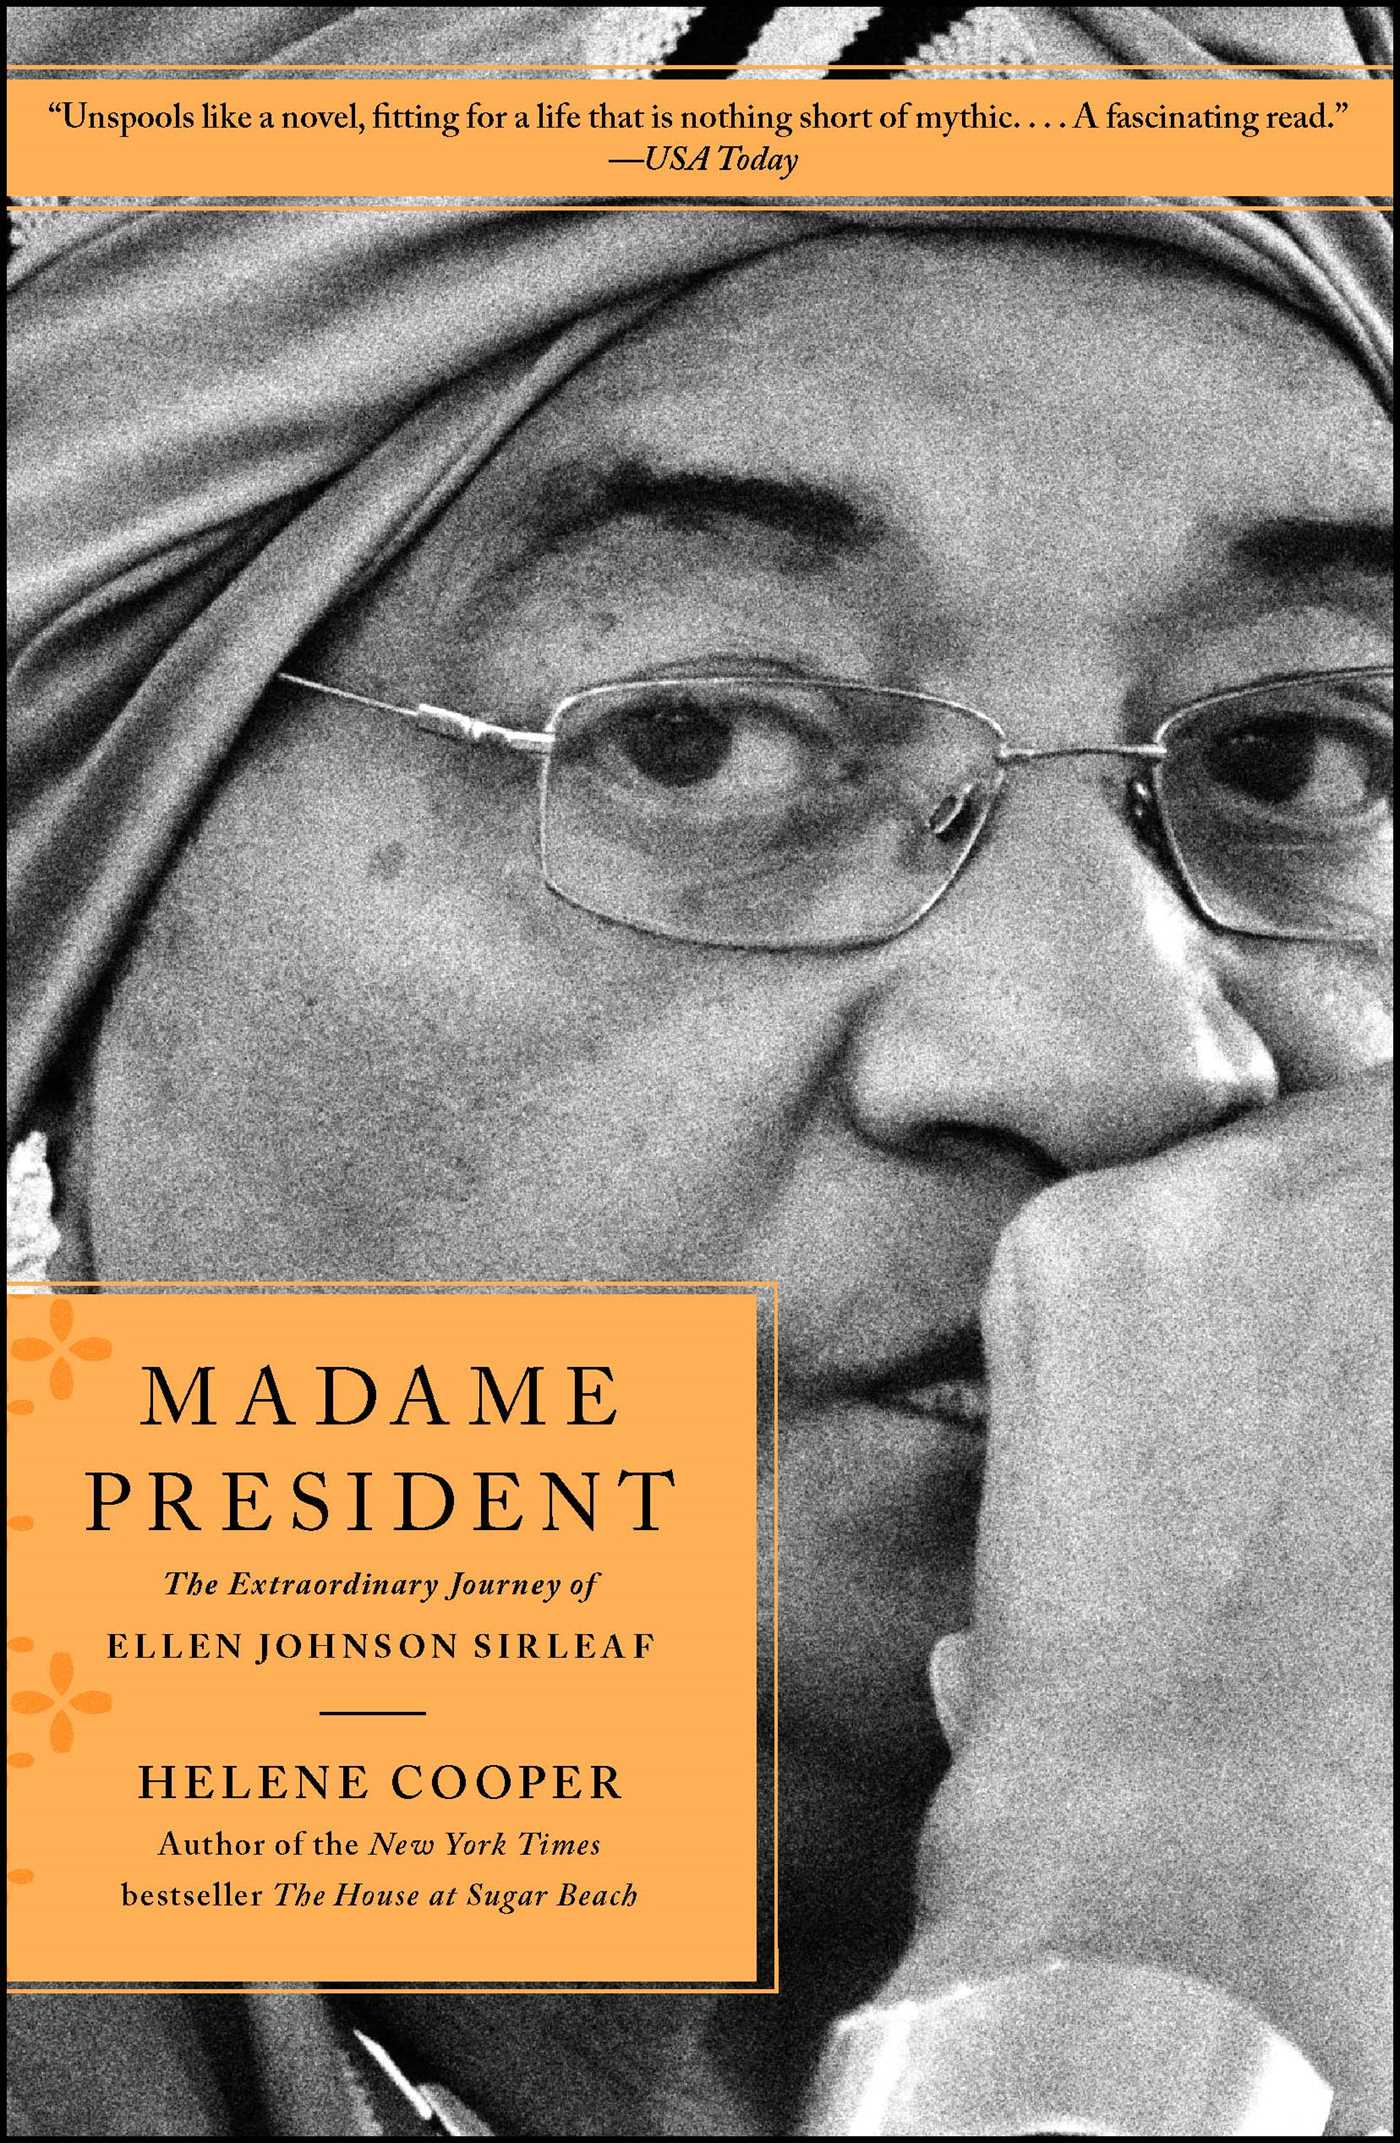 Madame President | Book by Helene Cooper | Official